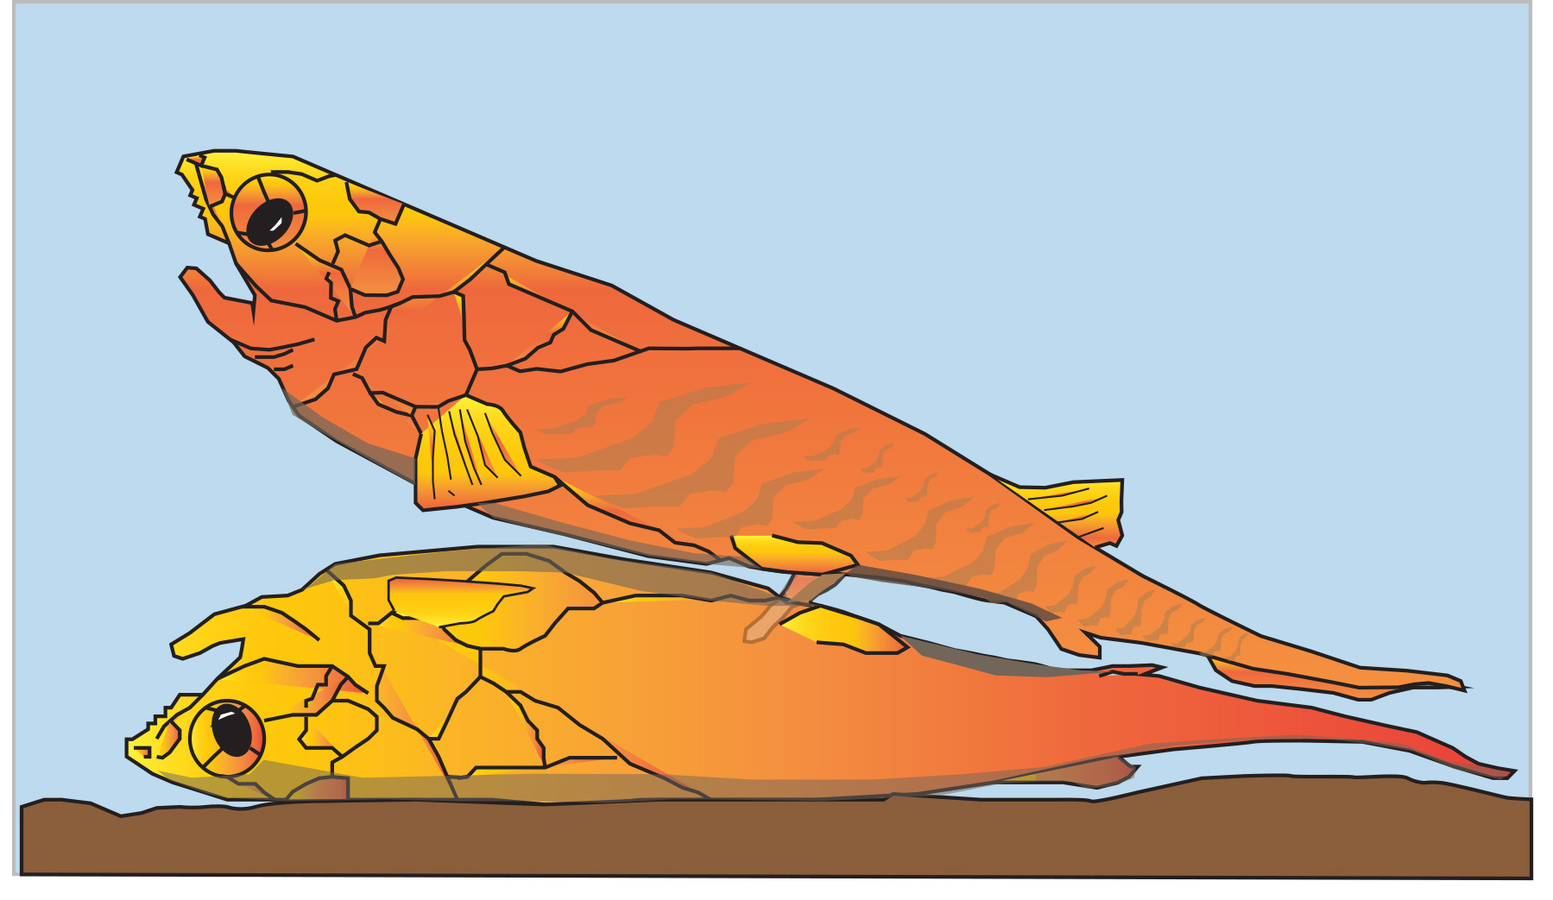 The First Vertebrate Sexual Organs Evolved As An Extra Pair Of Legs